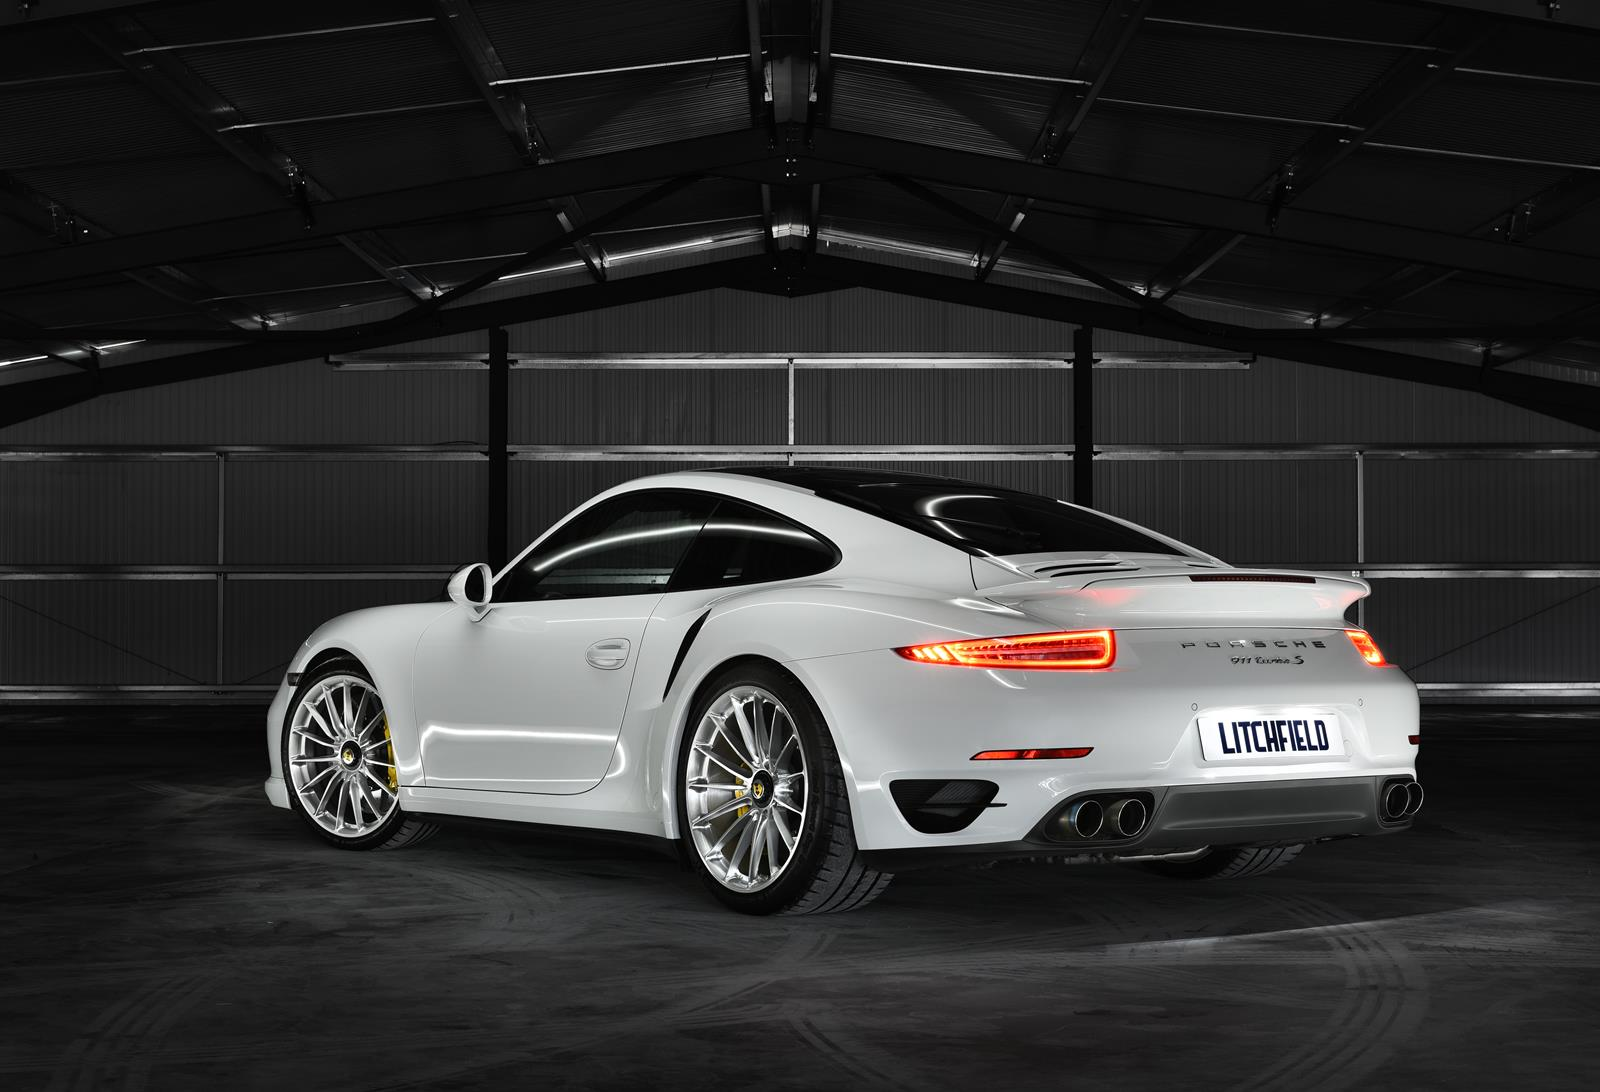 Porsche 911 Turbo S Litchfield